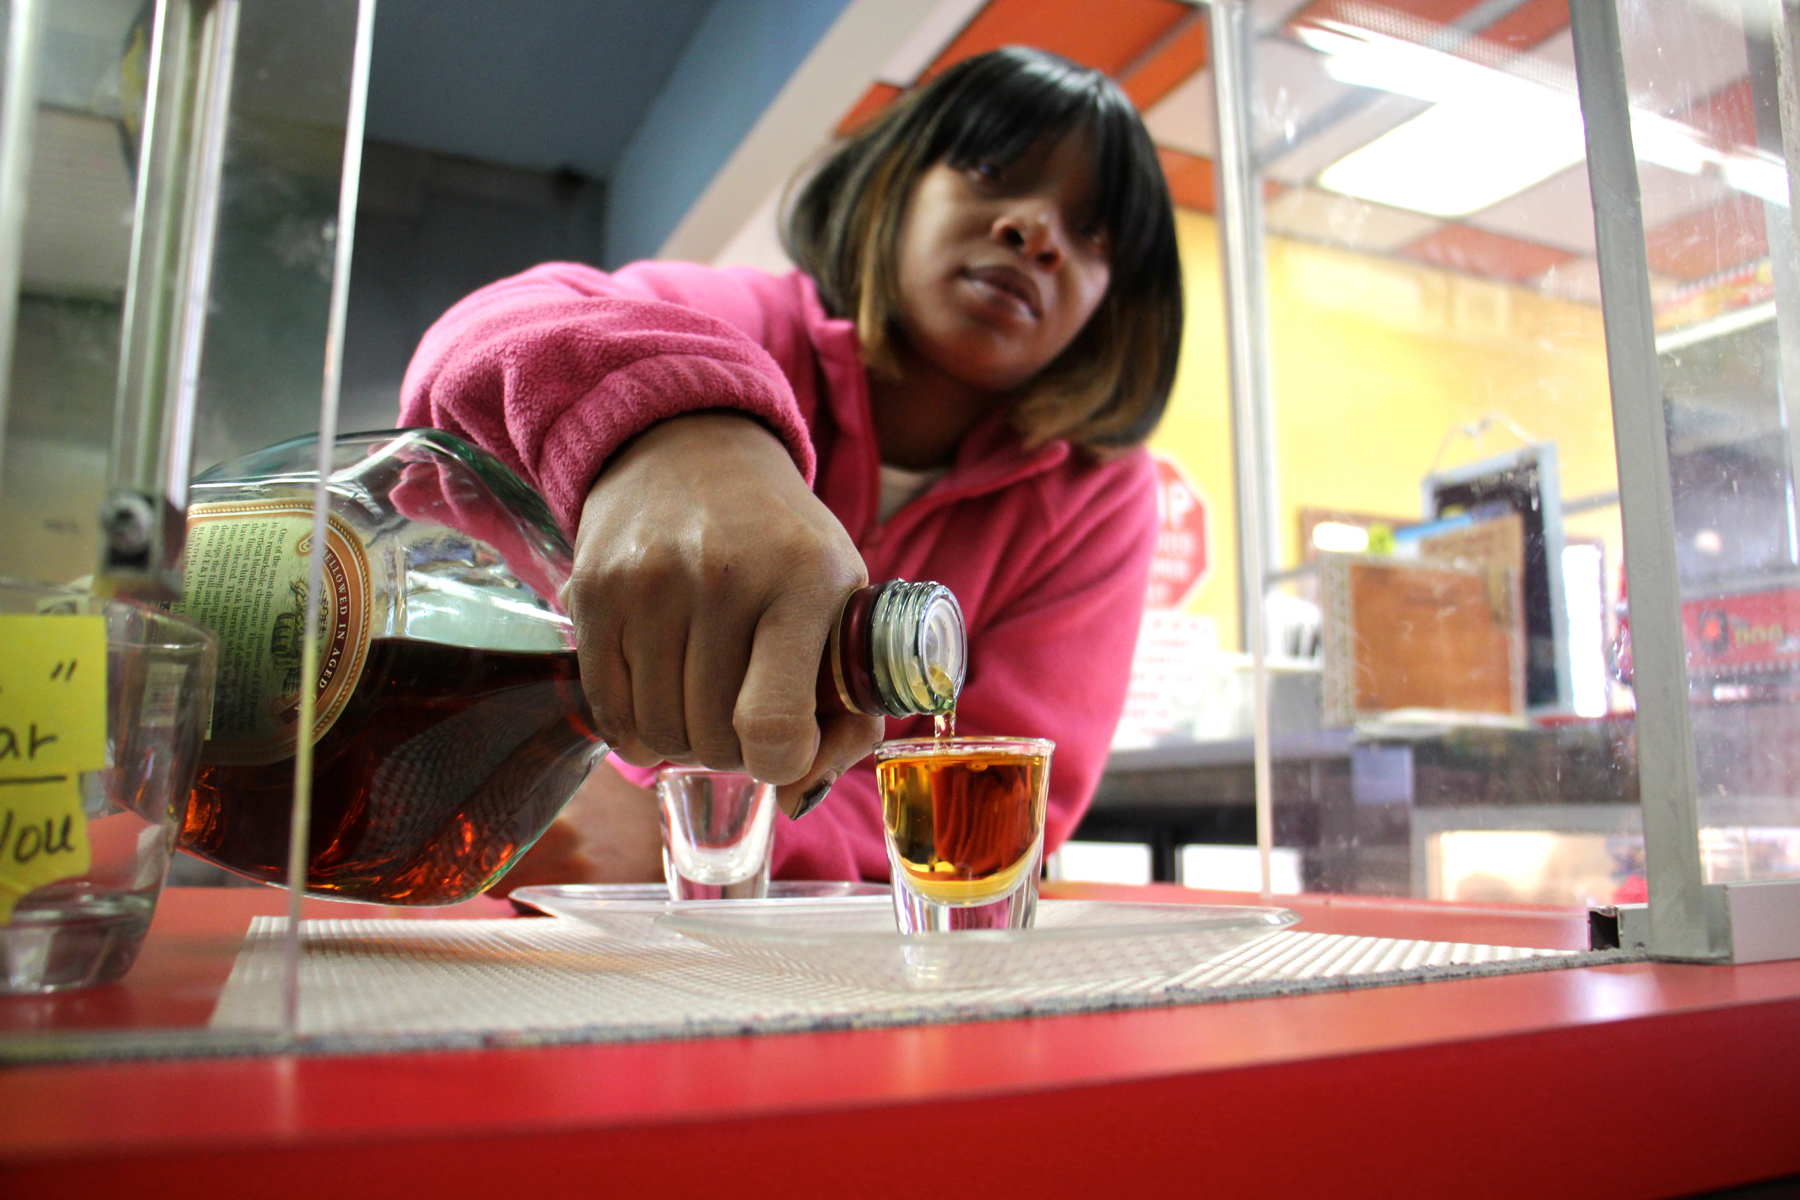 After opening a sliding plexiglass door, Nasifa Erwin pours a shot for a customer at Olney Steak and Beer on North Broad Street.